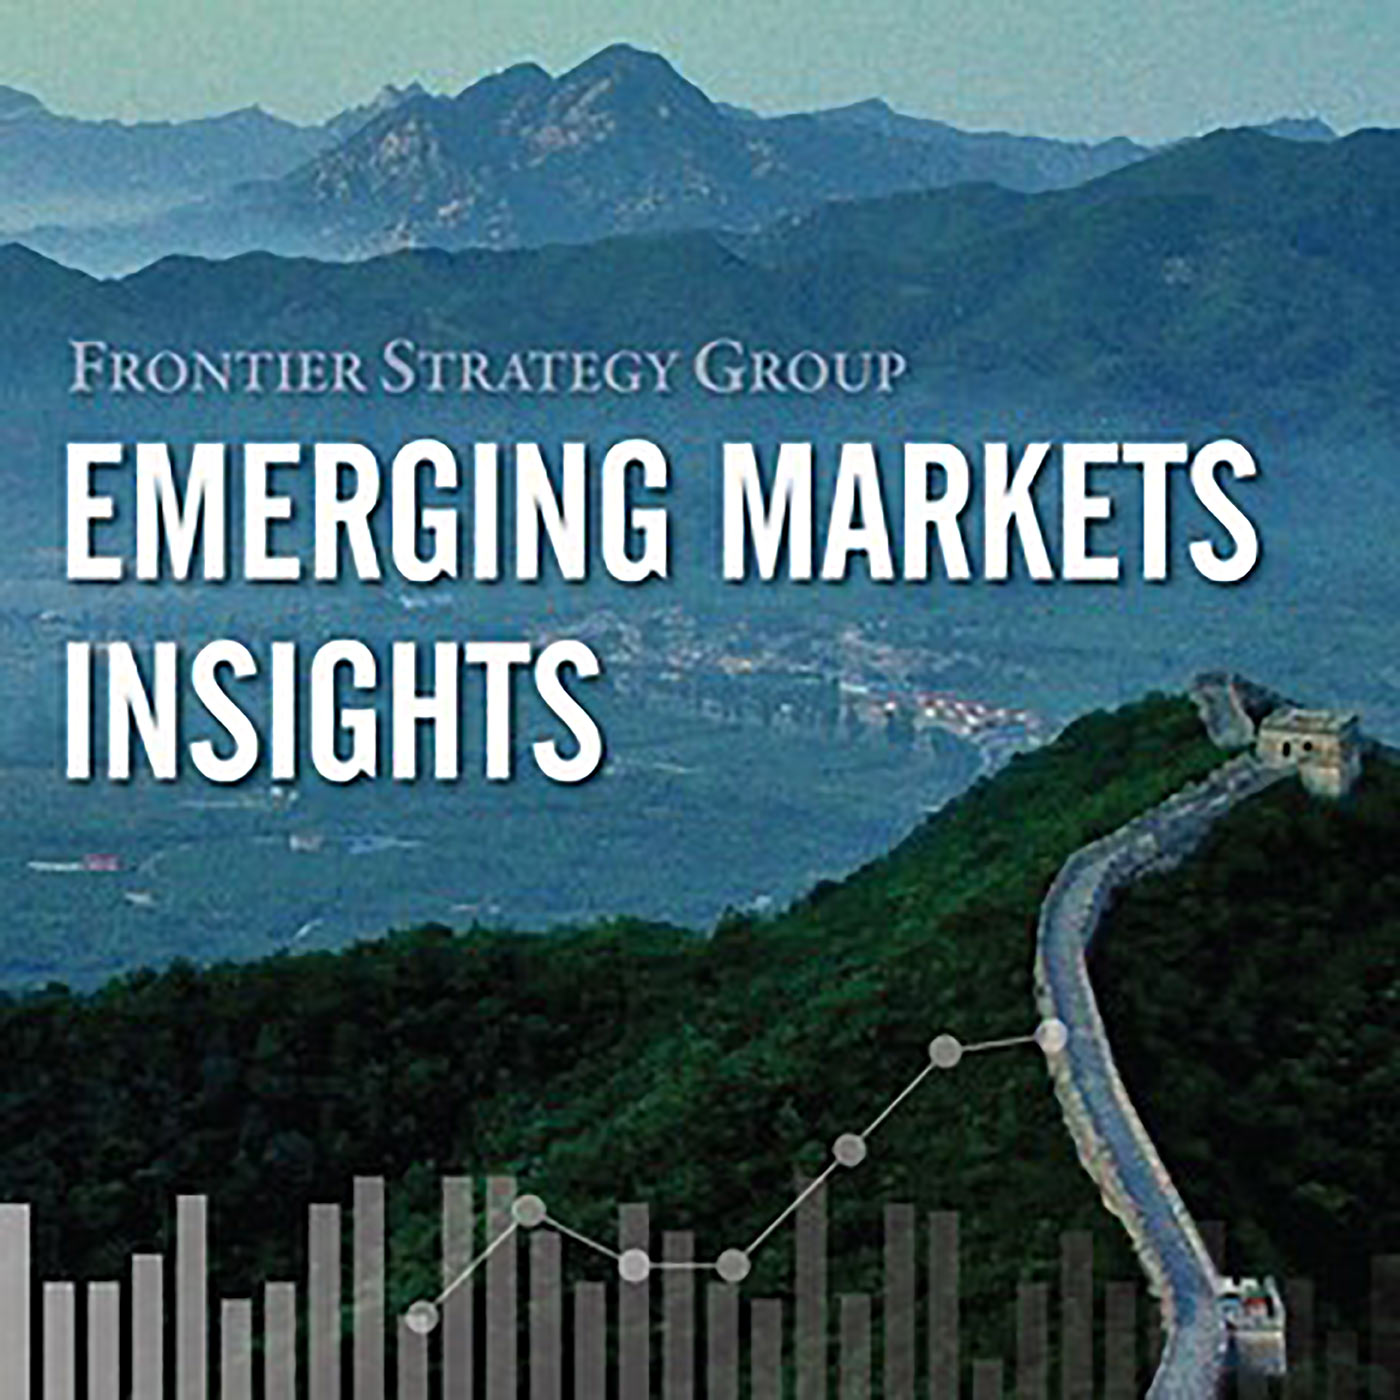 Frontier Strategy Group - Emerging Markets Insights